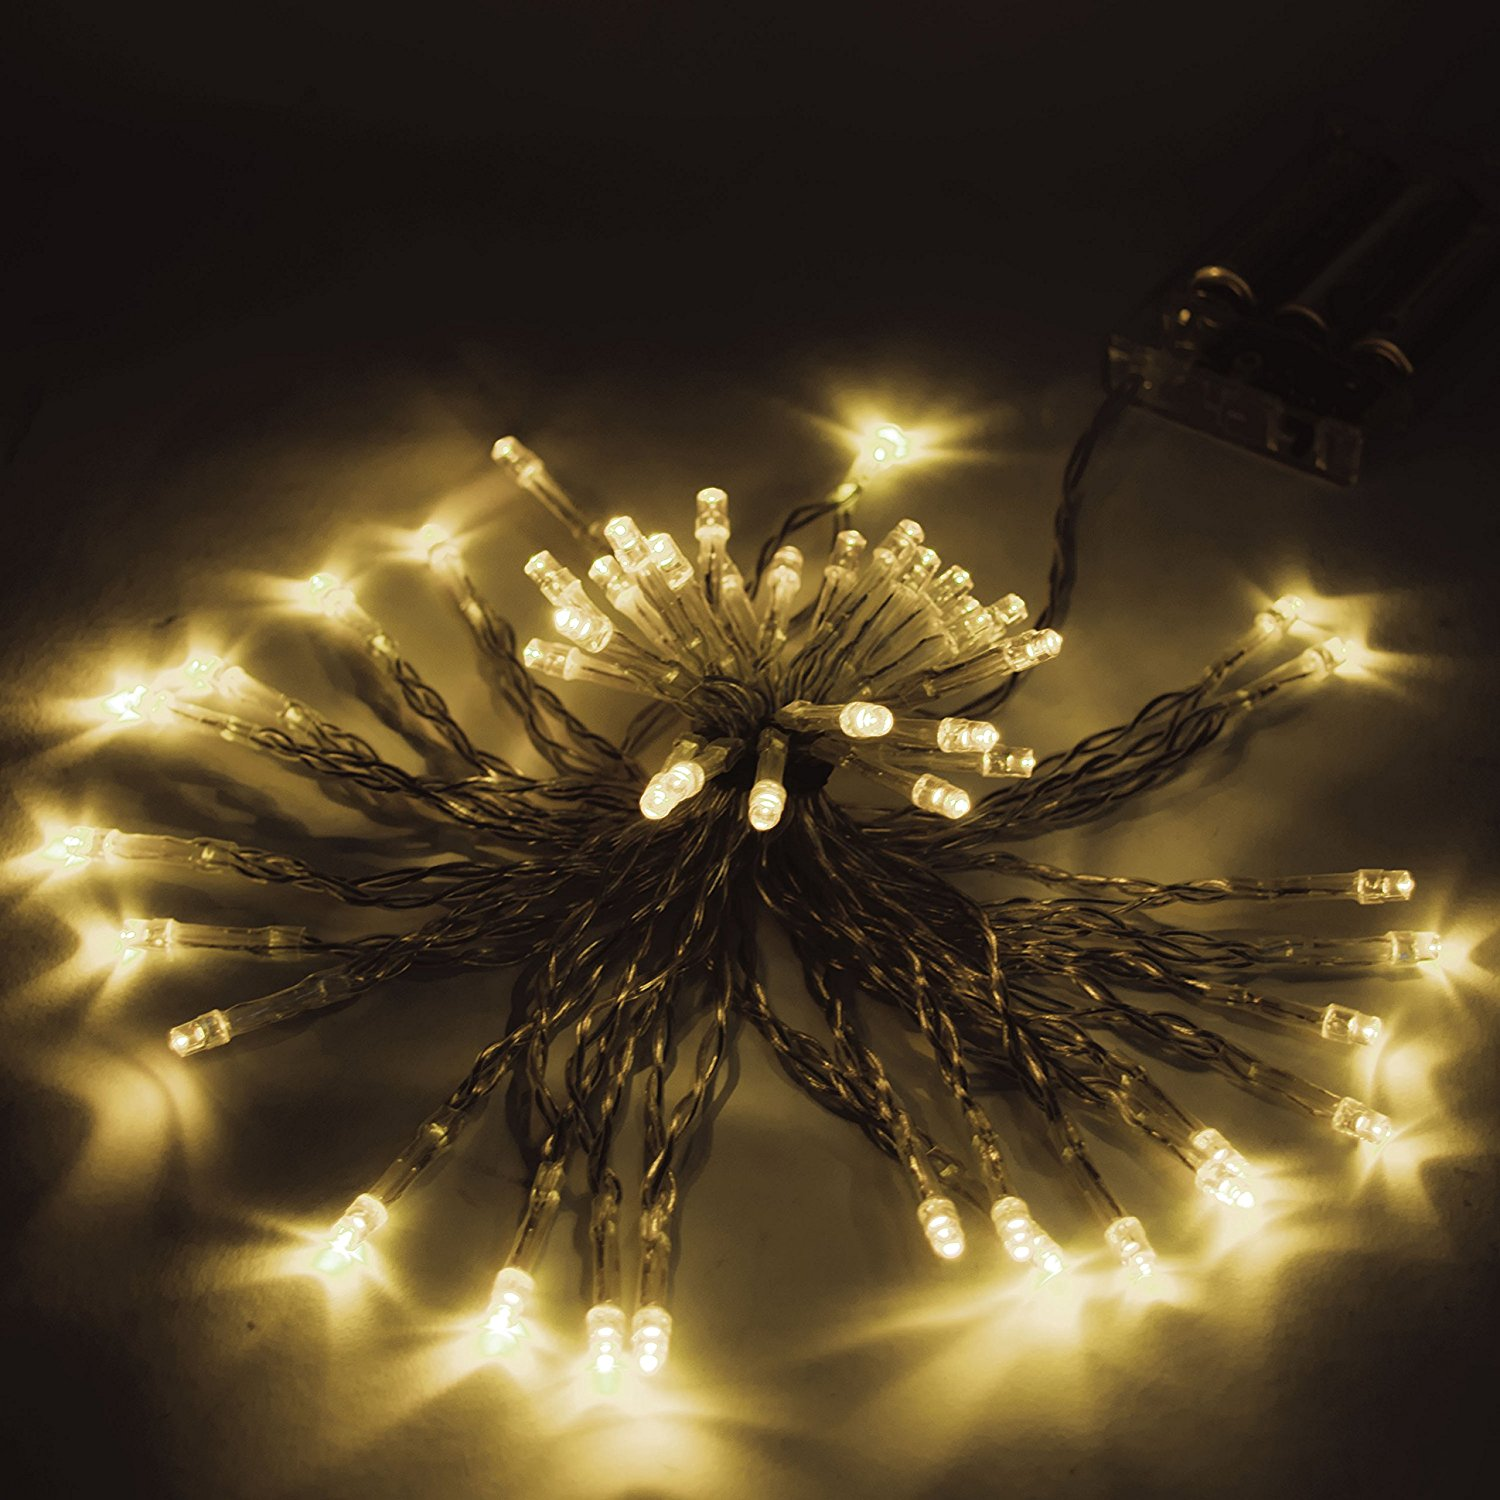 40 LED 13 Feet Battery Operated String Lights Warm White Color